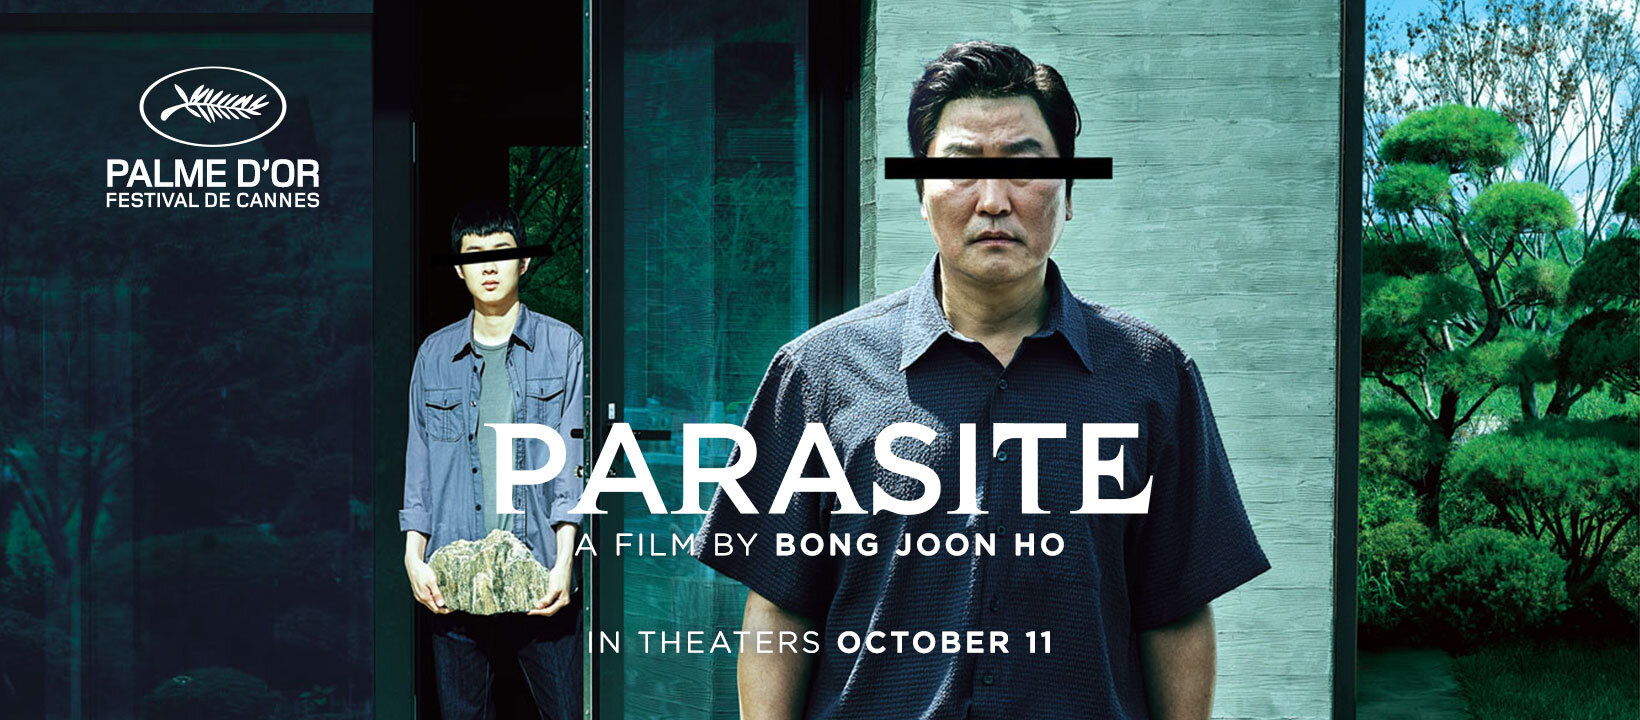 """""""Parasite"""" took home the Palme d'Or by unanimous vote at the 2019 Cannes Film Festival, making Bong Joon-ho the first Korean director to win the award. Photo Courtesy: NEON"""